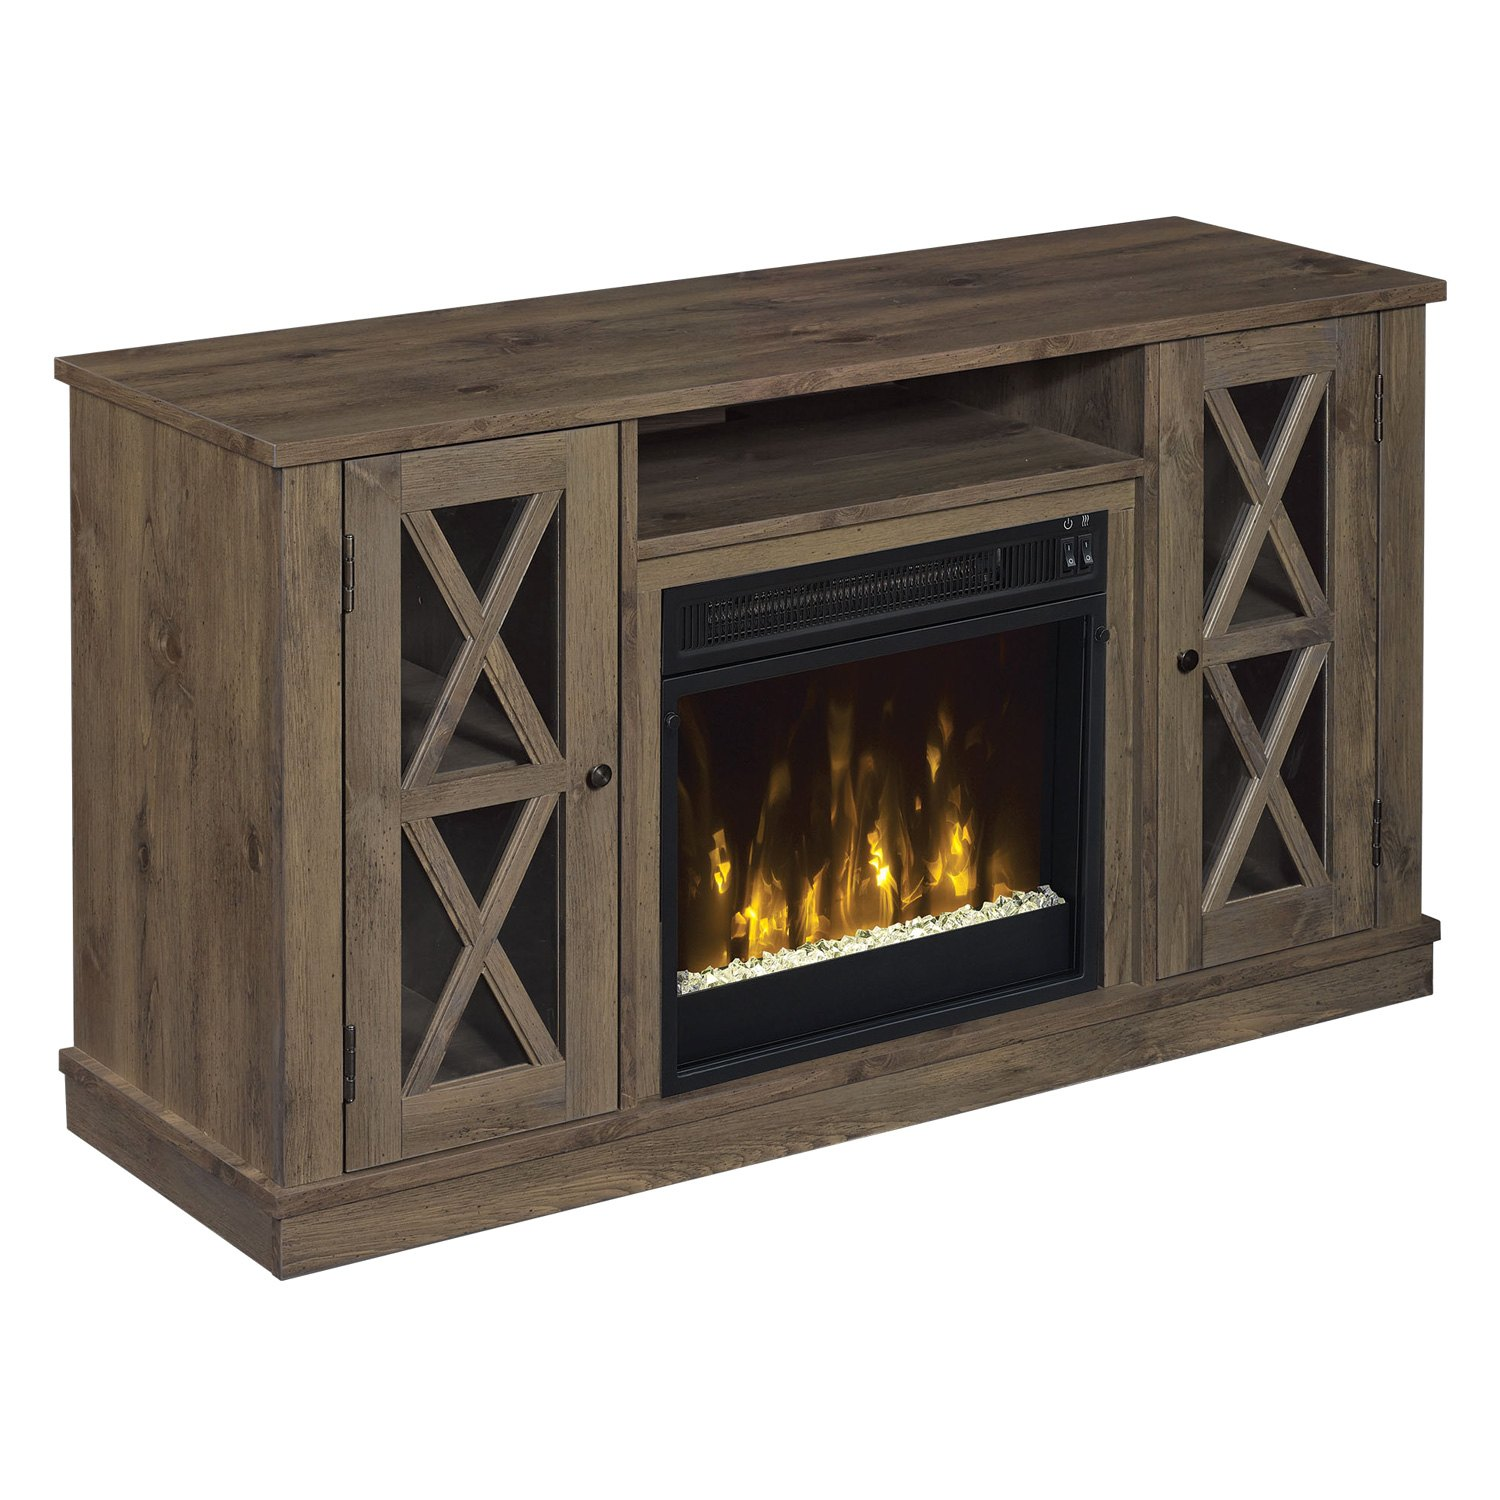 "Bayport TV Stand with 18"" Electric Fireplace - Part Number 18MM6092-PI14S by Classic Flame. Color: Spanish Gray. For TVs up to 55"" or up to 45 lb. Home & Appliances."